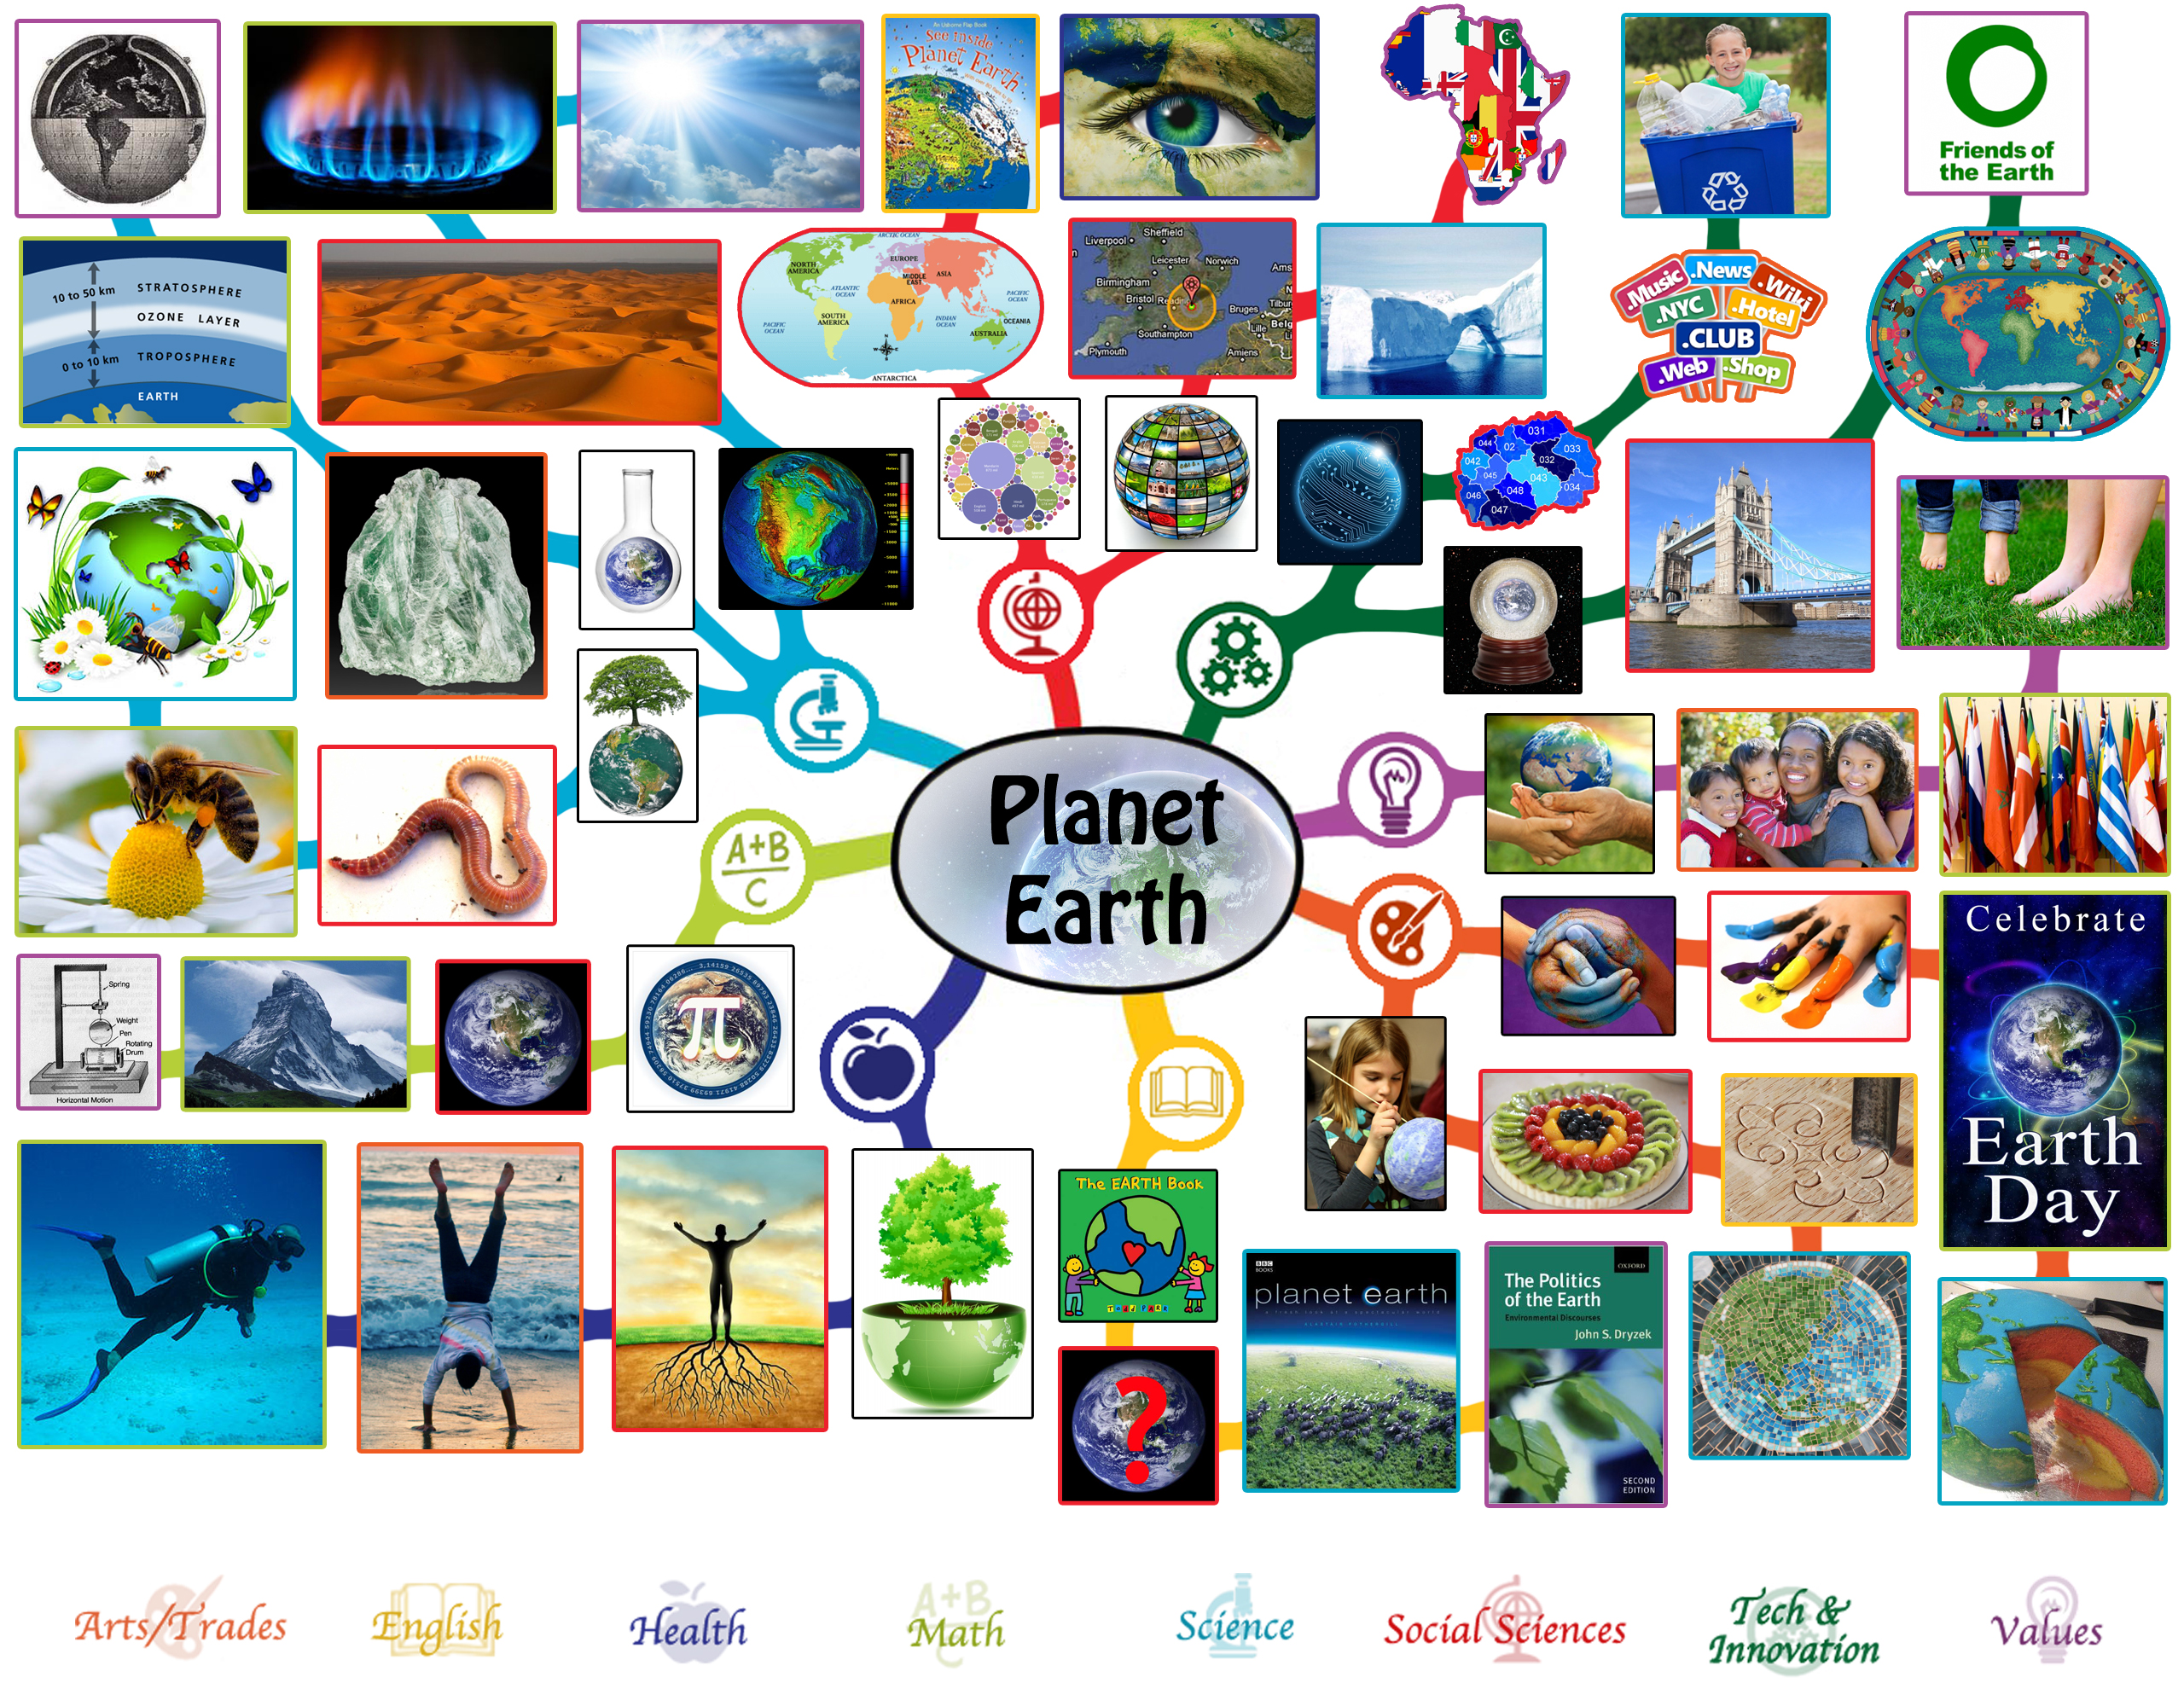 planet earth lesson plan all subjects any age any learning environment open source and. Black Bedroom Furniture Sets. Home Design Ideas